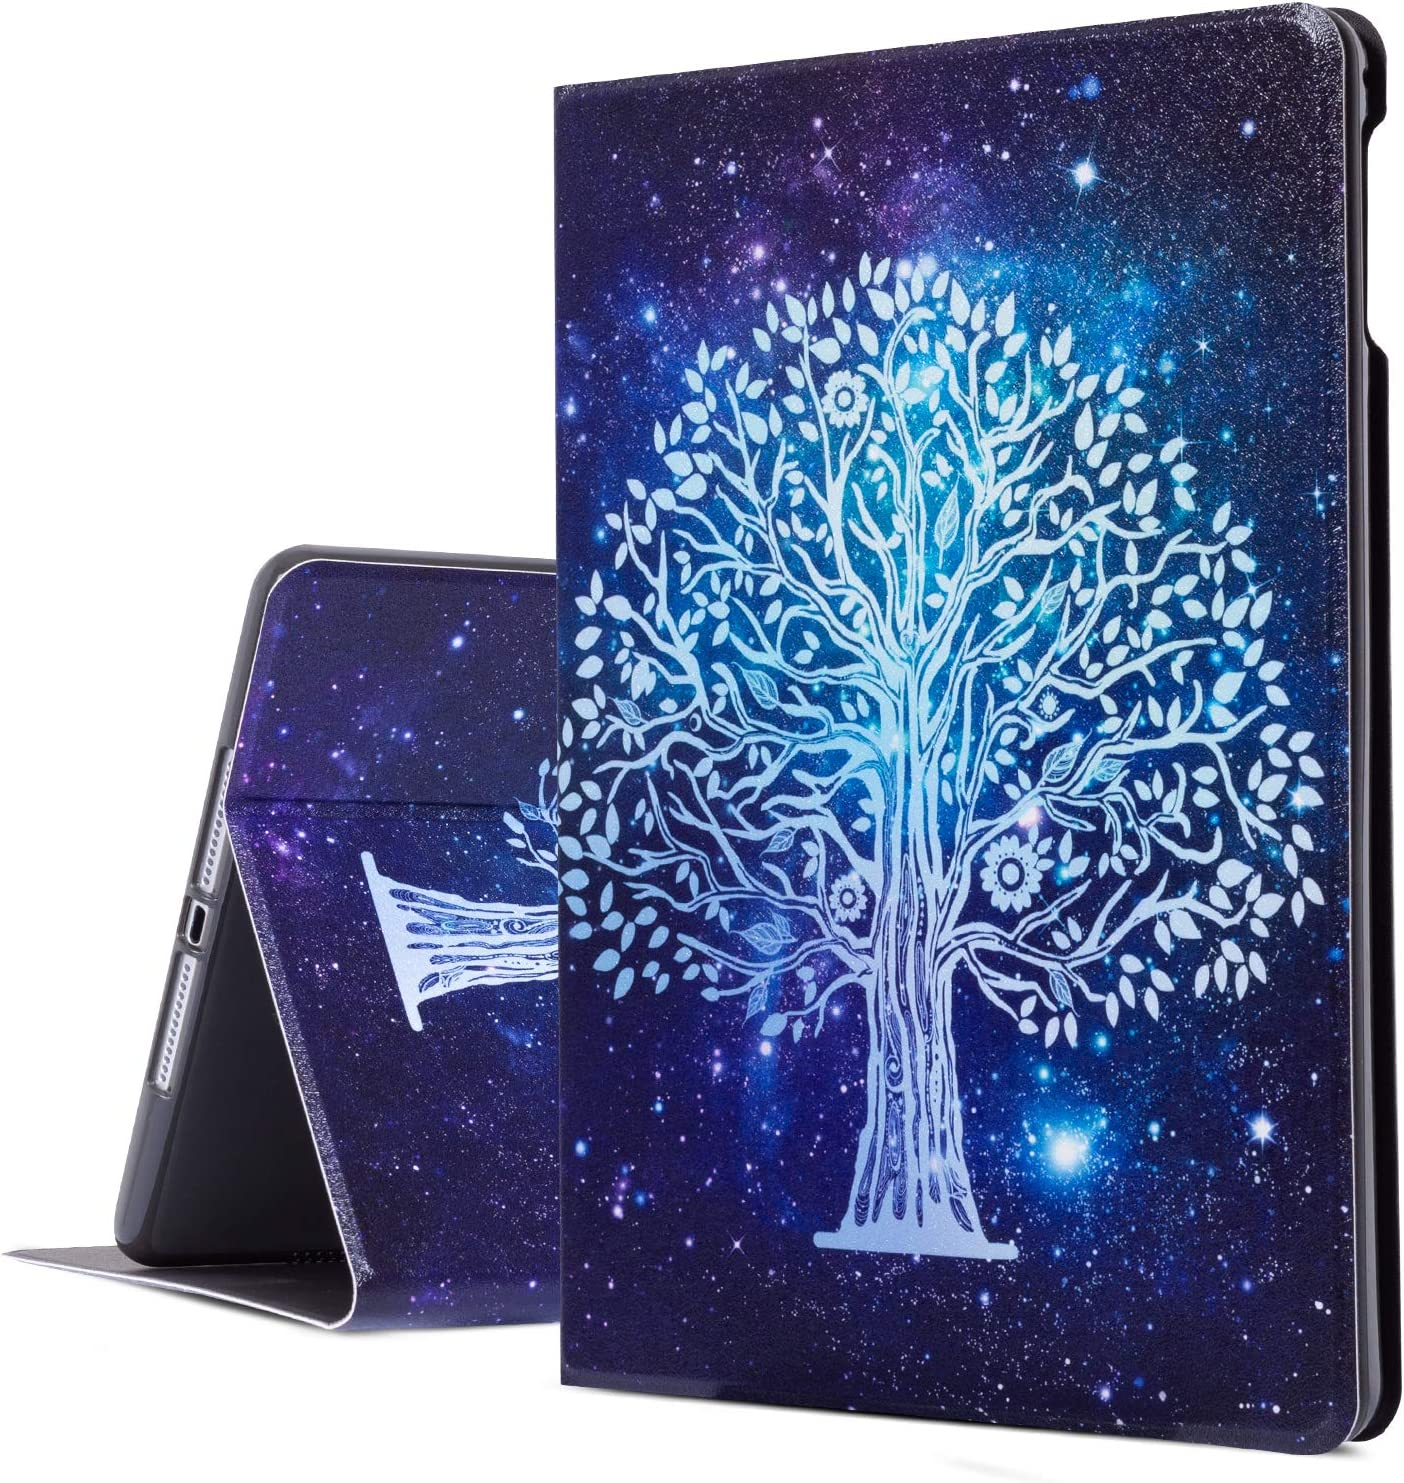 iPad Air 2 Case, iPad Air Case, Galaxy Tree iPad 9.7 Inch Case Protective Cover for Apple 5th/6th Generation, Multi-Angle Viewing Case with Adjustable Stand Auto Wake/Sleep Function (Galaxy)